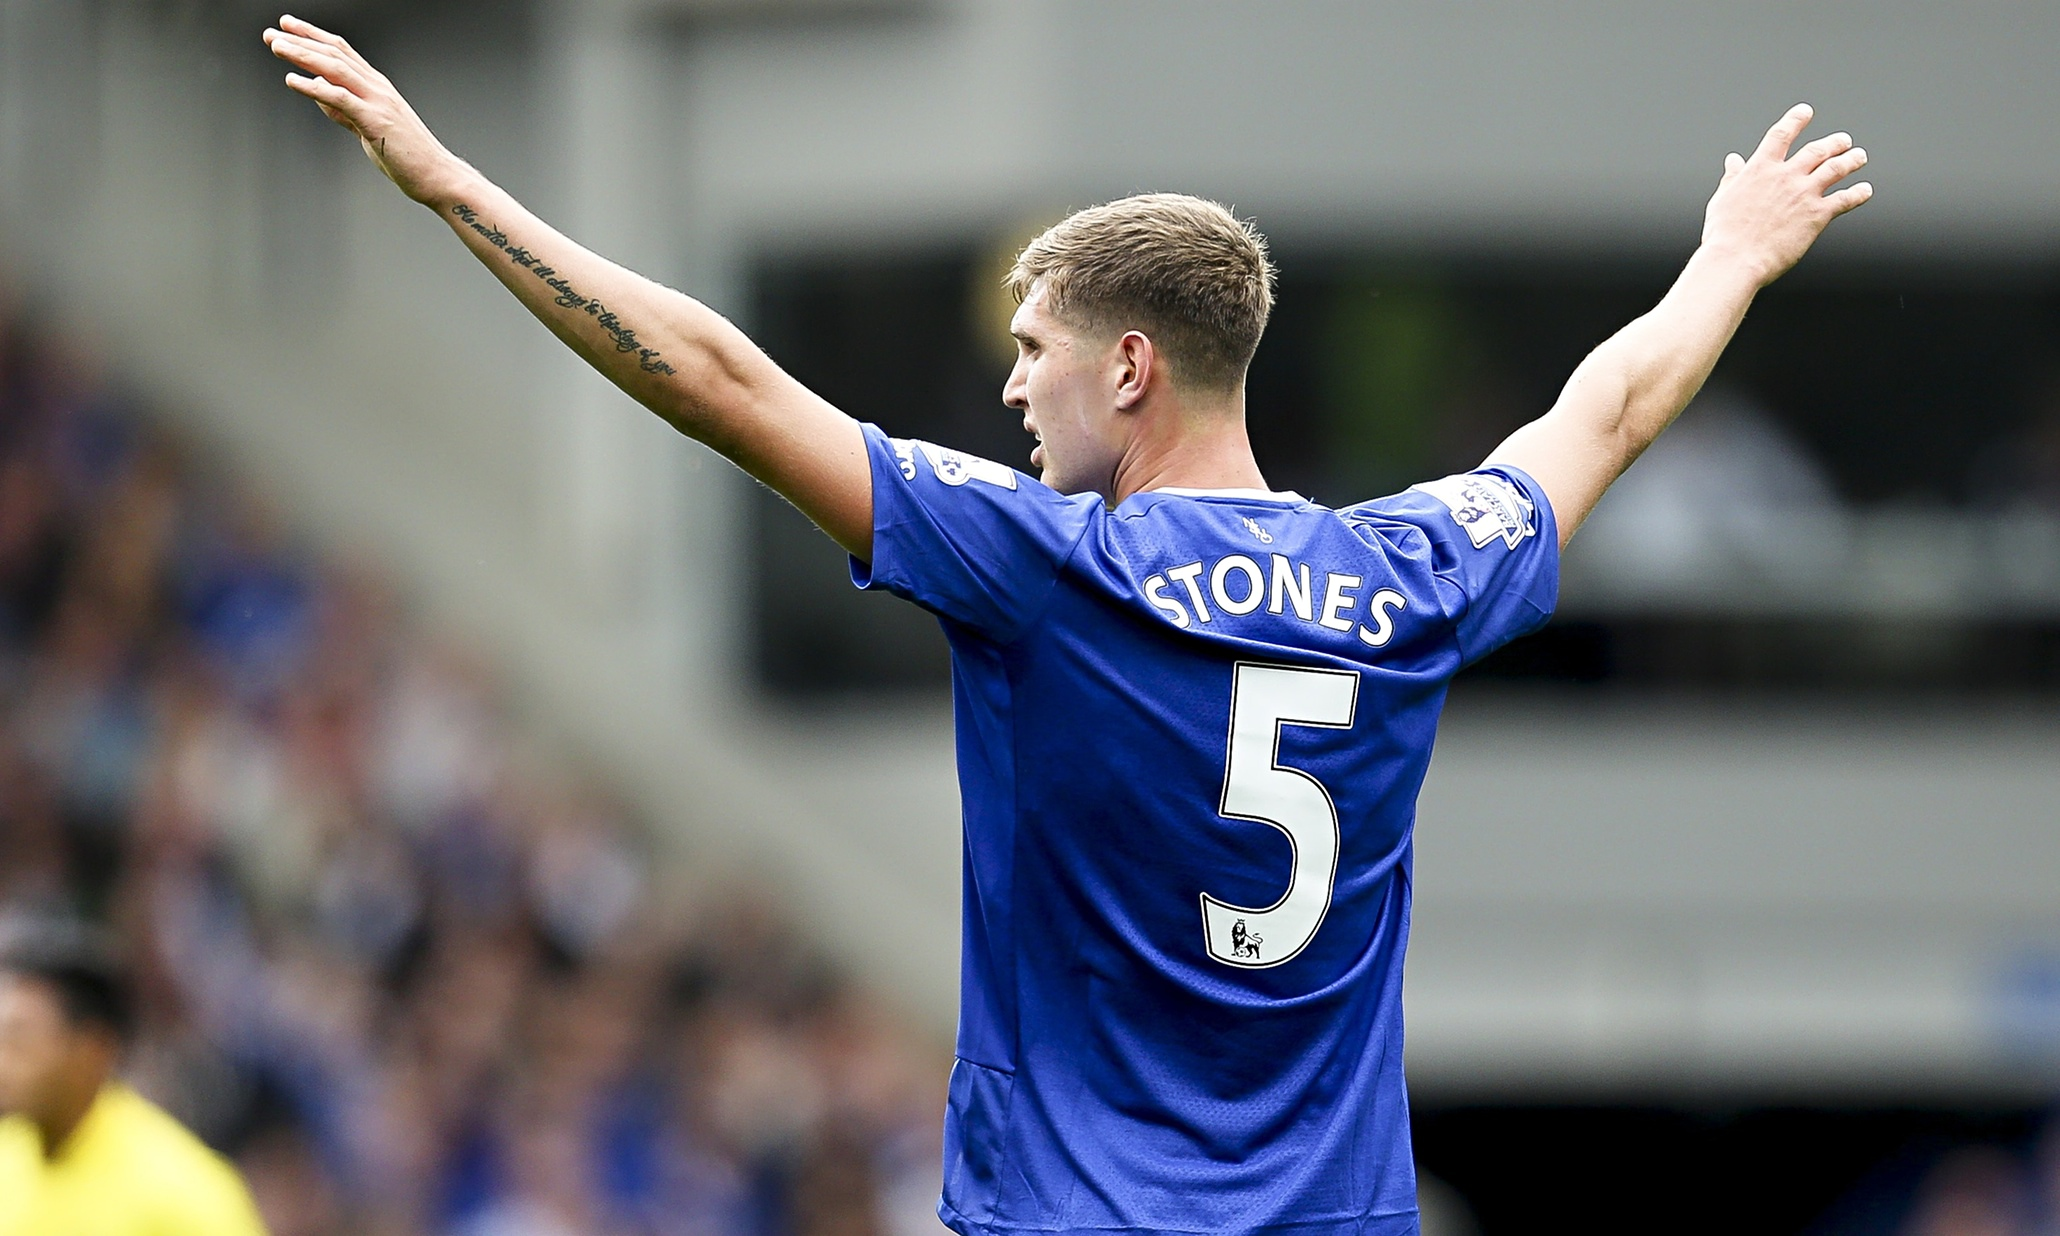 John Stones CAN grow into a defensive wall